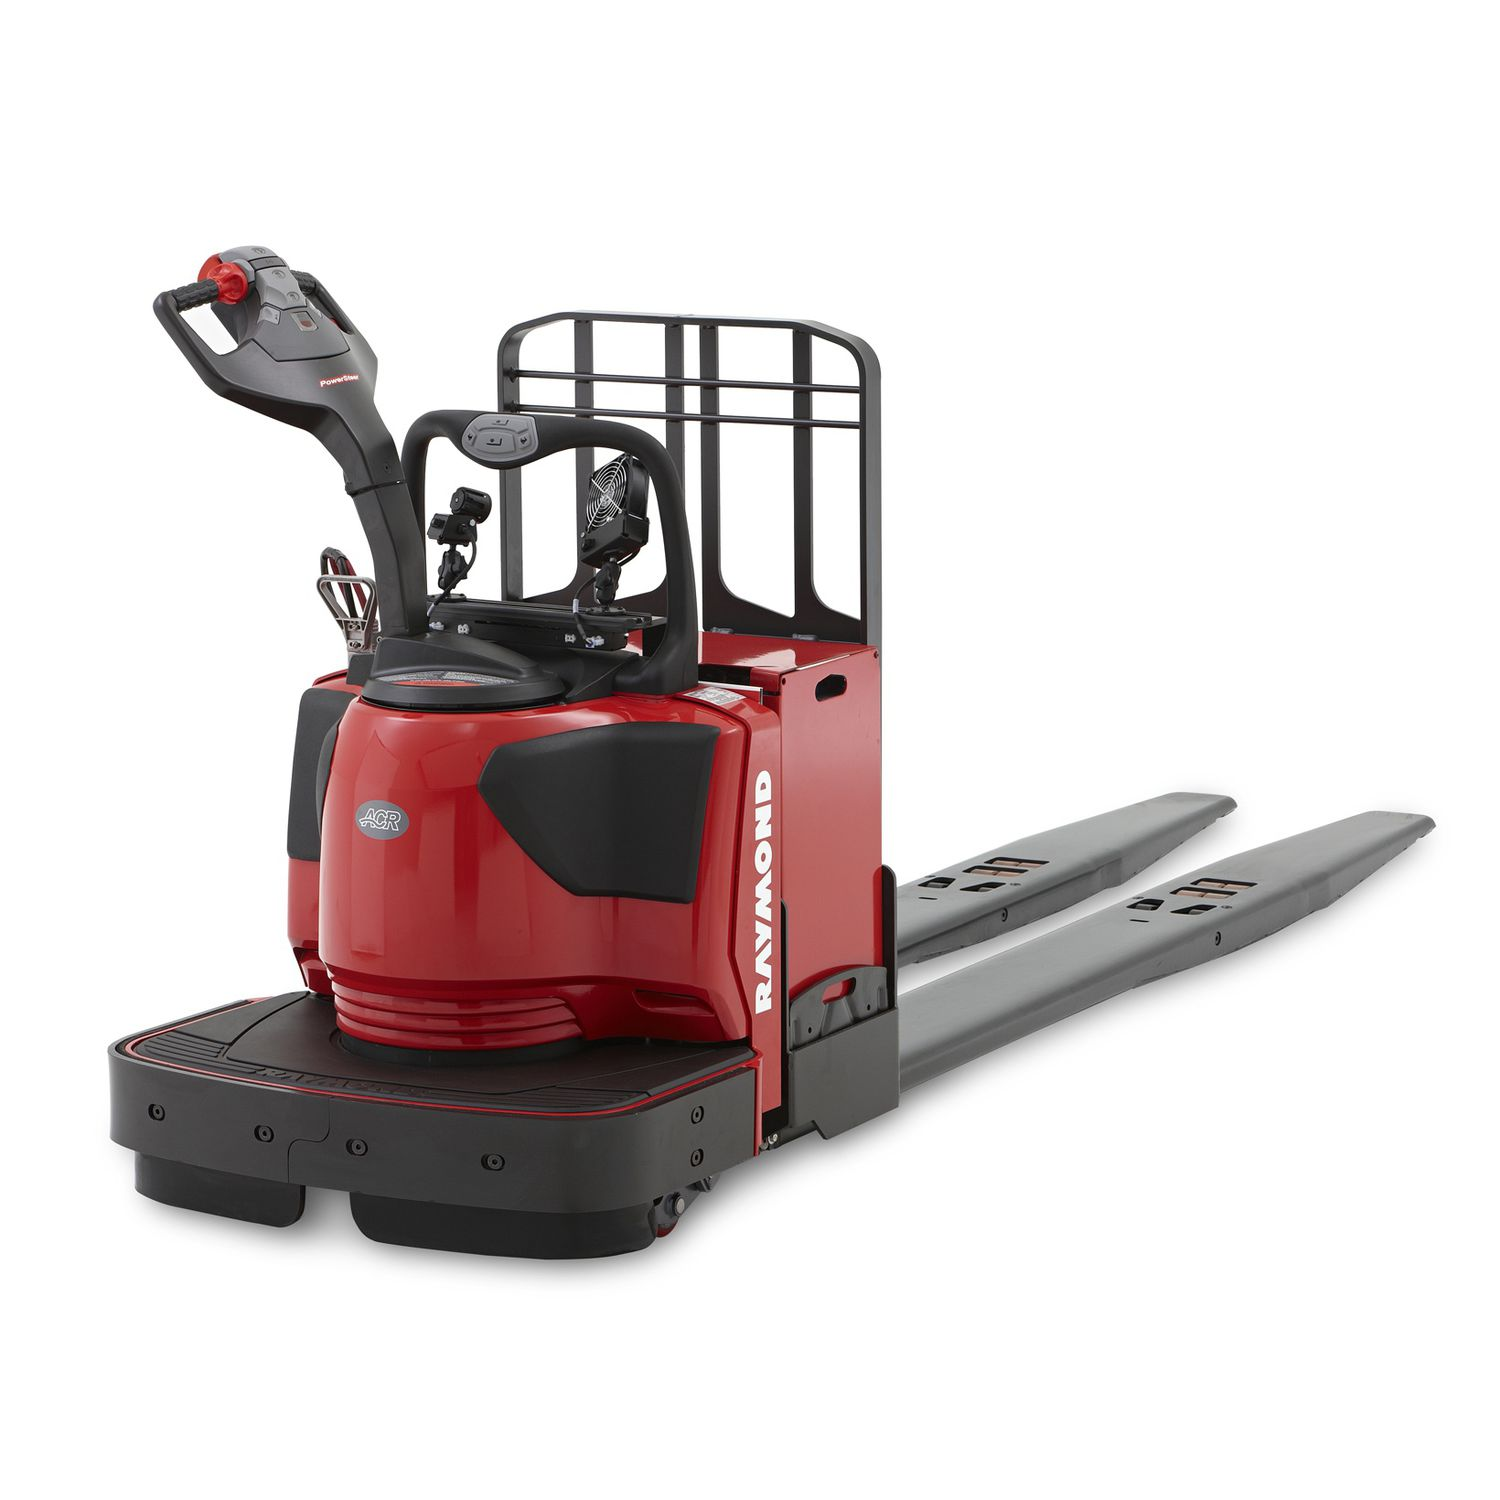 Electric pallet truck / platform / multifunction / rugged 8410 Raymond